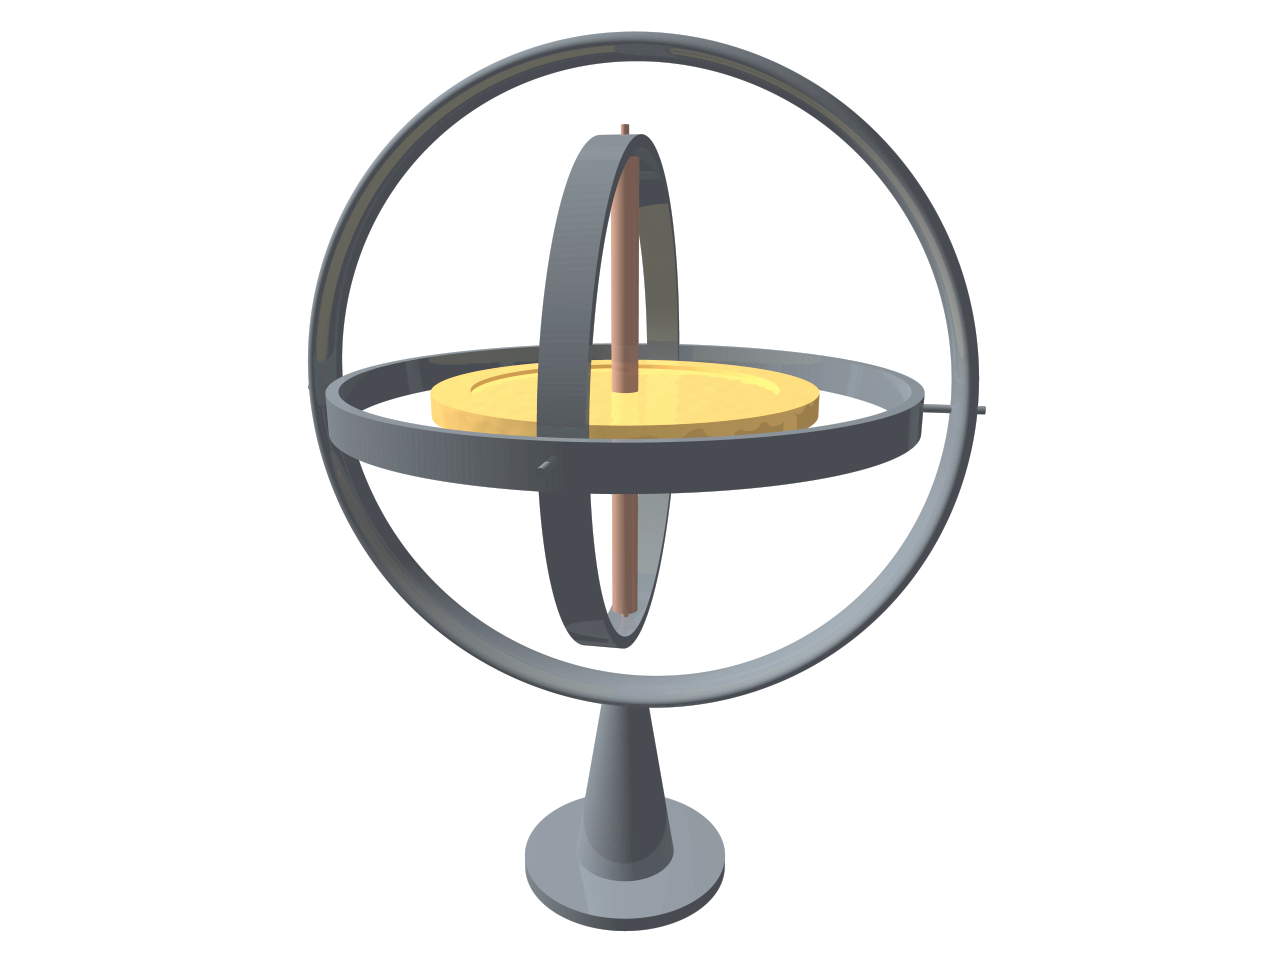 Gyroscope Png - File:3D Gyroscope-no text.png - Wikipedia